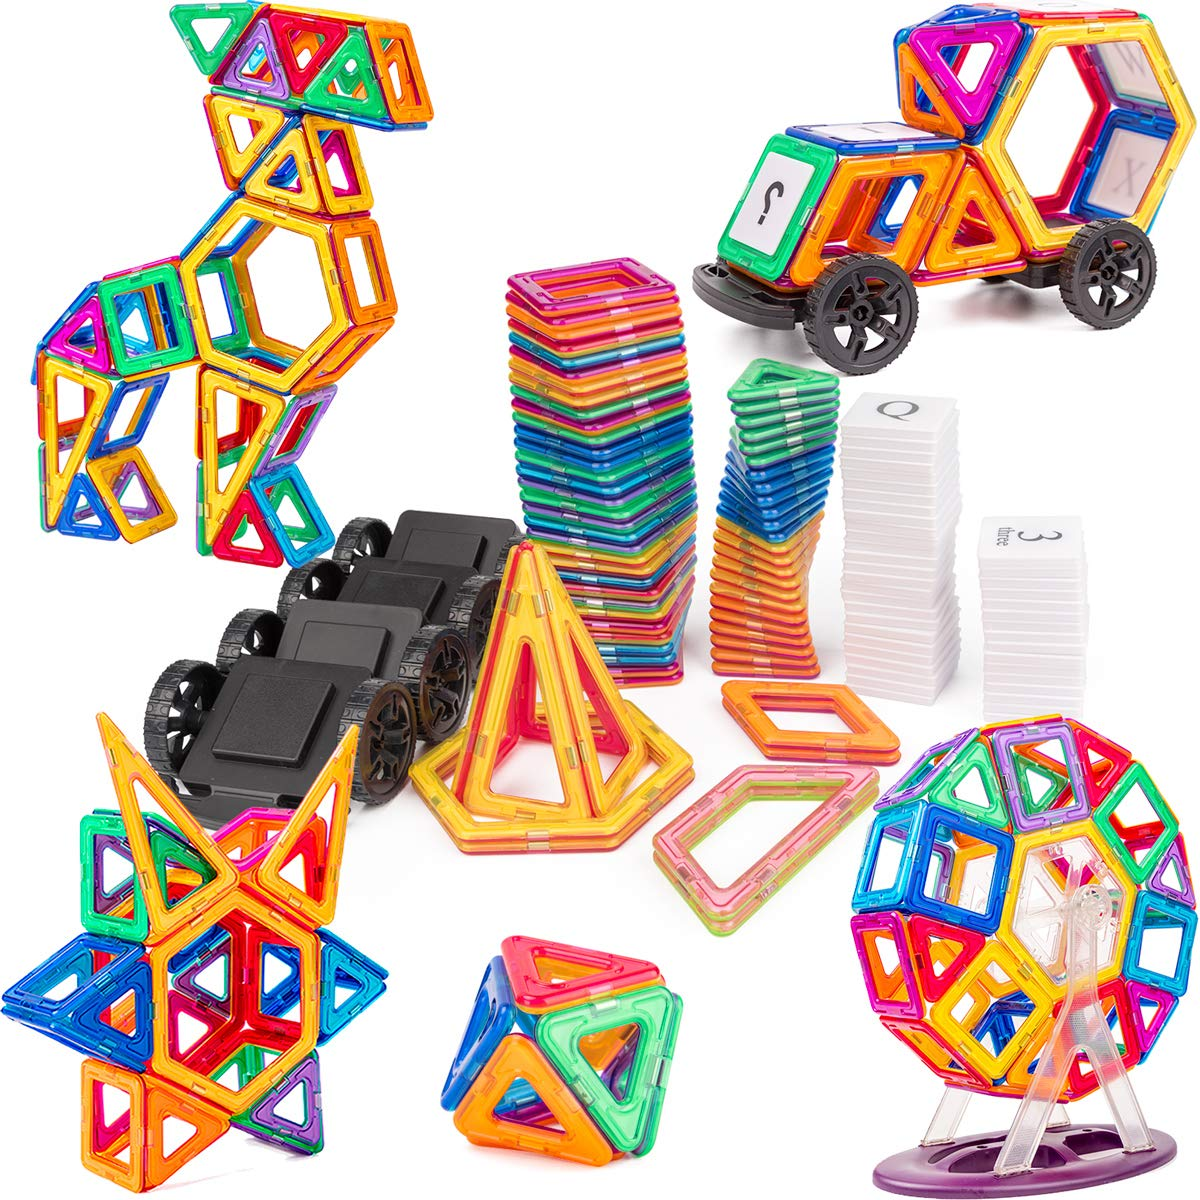 cossy Magnet Tiles Building Block, 115 PCs Magnetic Stick and Stack Set for Girls and Boys, Perfect STEM Educational Toys for Kids Children by cossy